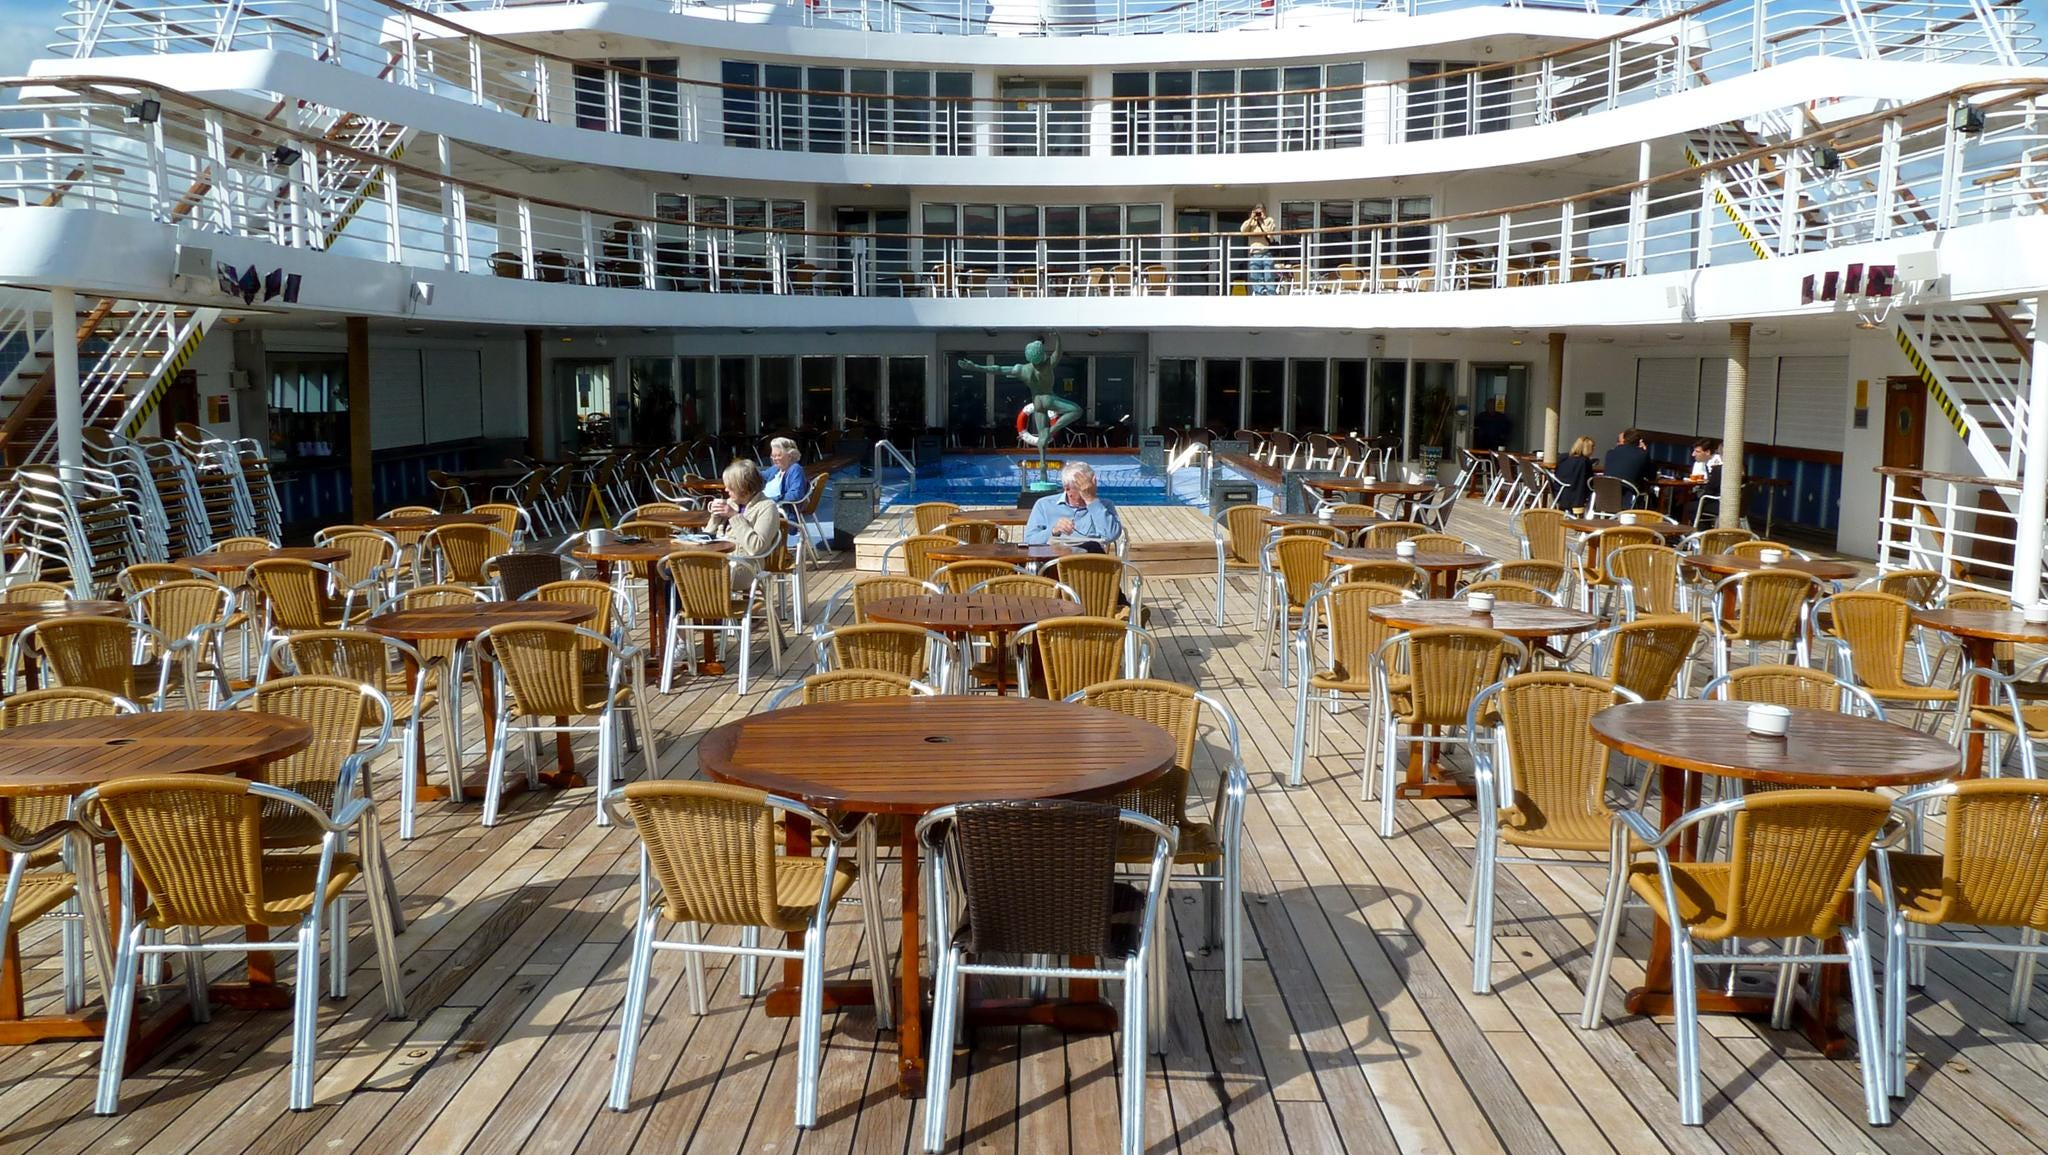 This is a view facing forward from beyond the pool area on the aft Magellan Deck lido.